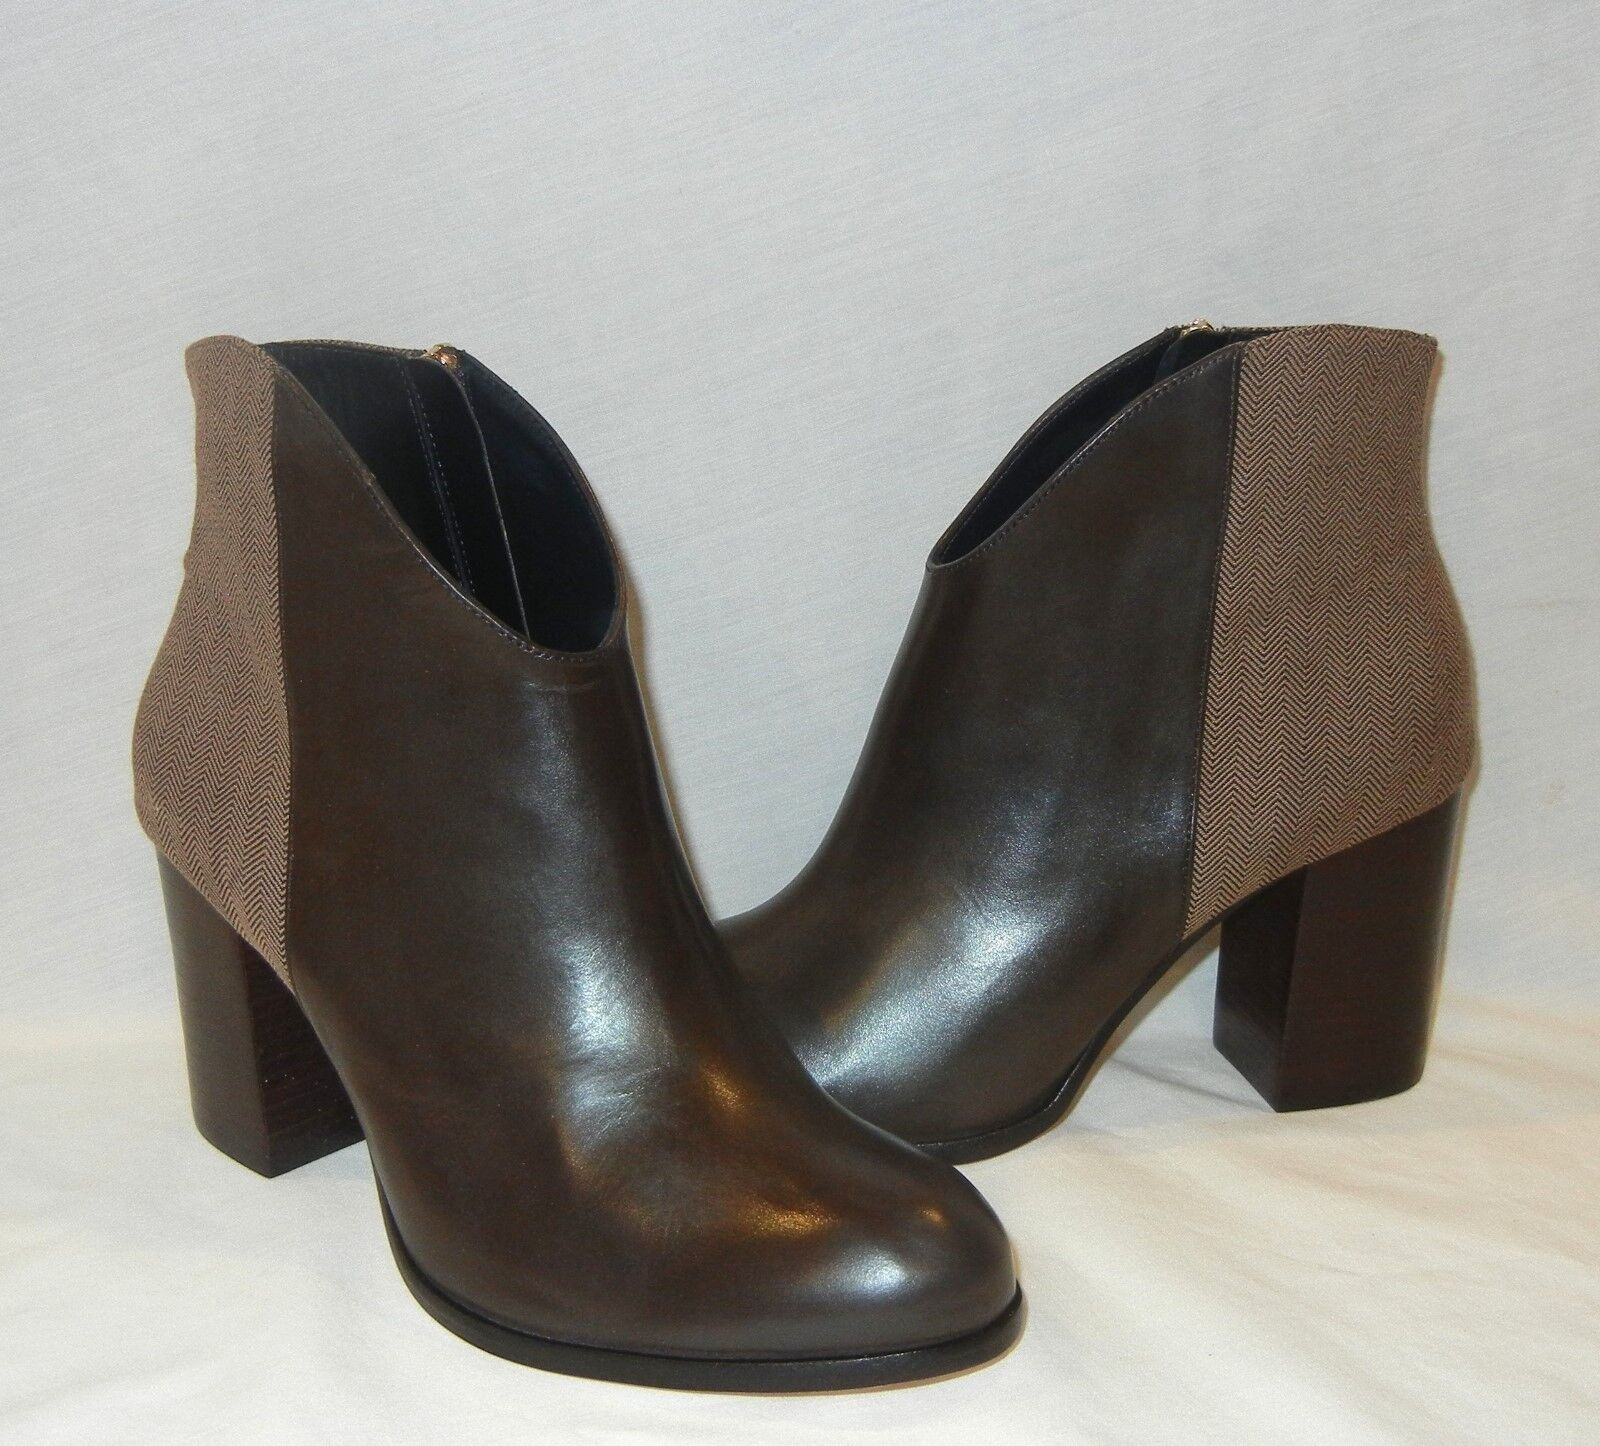 Guilhermina Women's Tweed-Backed Booties Ankle Boots Retail 288 size 7